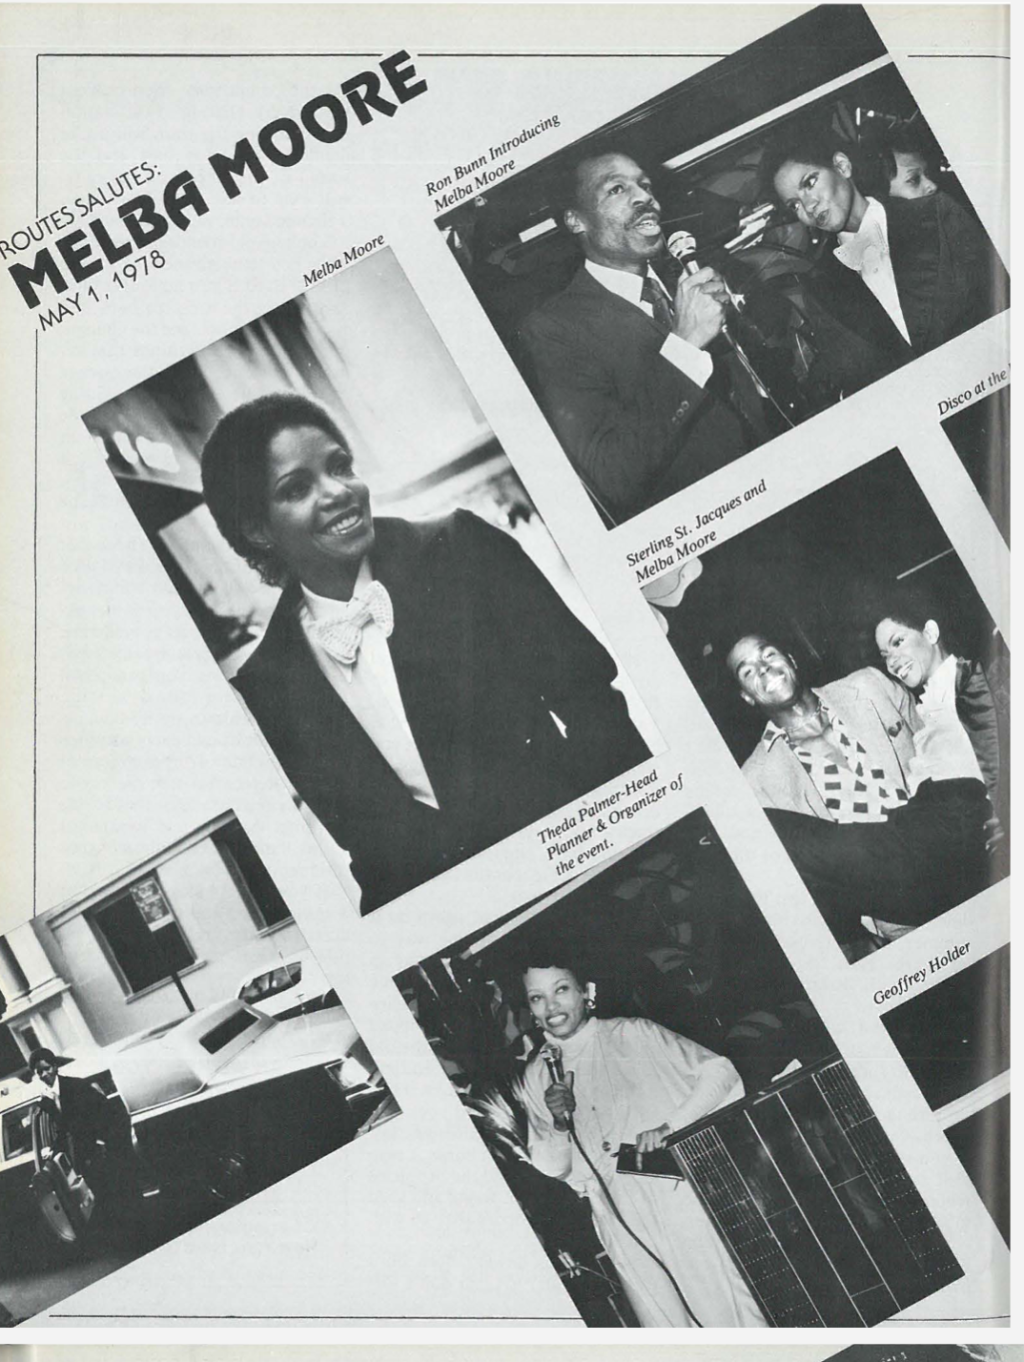 ROUTES Salute to Melba Moore Photo Montage — Ronald Bunn, Melba Moore, Sterling St. Jacques, Theda Palmer-Head, Geoffrey Holder